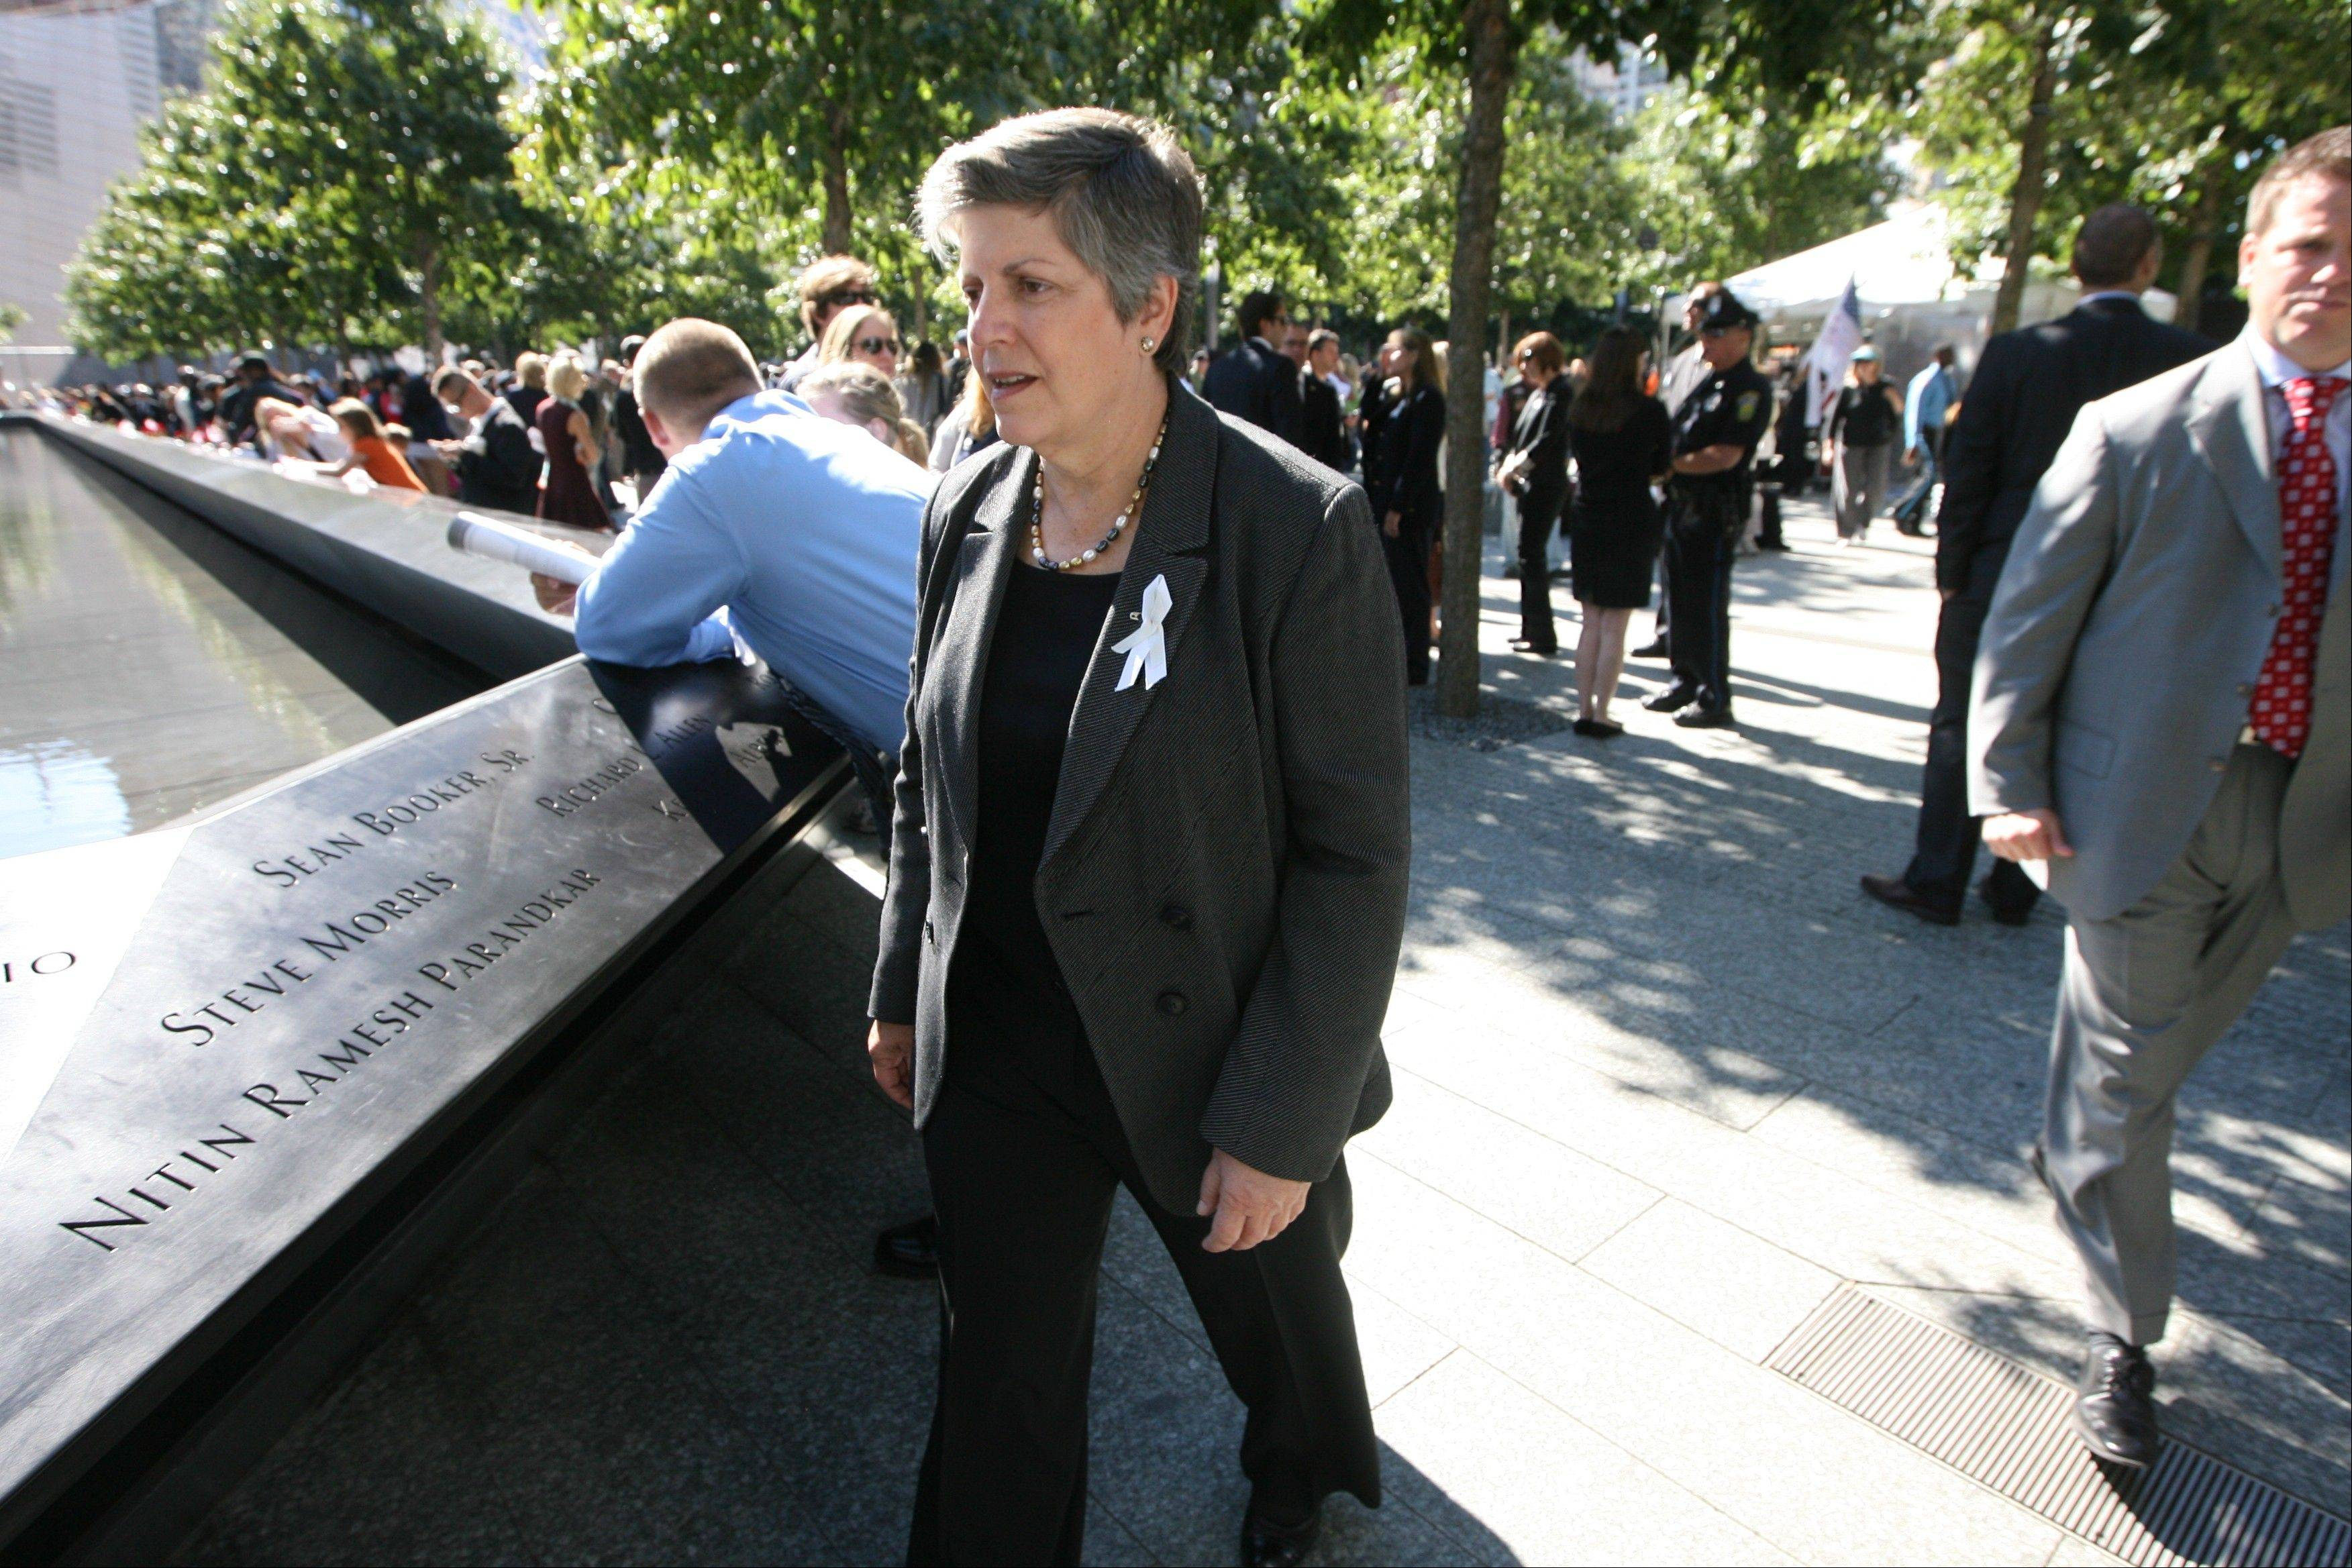 Homeland Security Secretary Janet Napolitano walks past the north reflecting pool Tuesday during a ceremony marking the 11th anniversary of the Sept. 11 terrorist attacks, at the National September 11 Memorial at the World Trade Center site in New York.